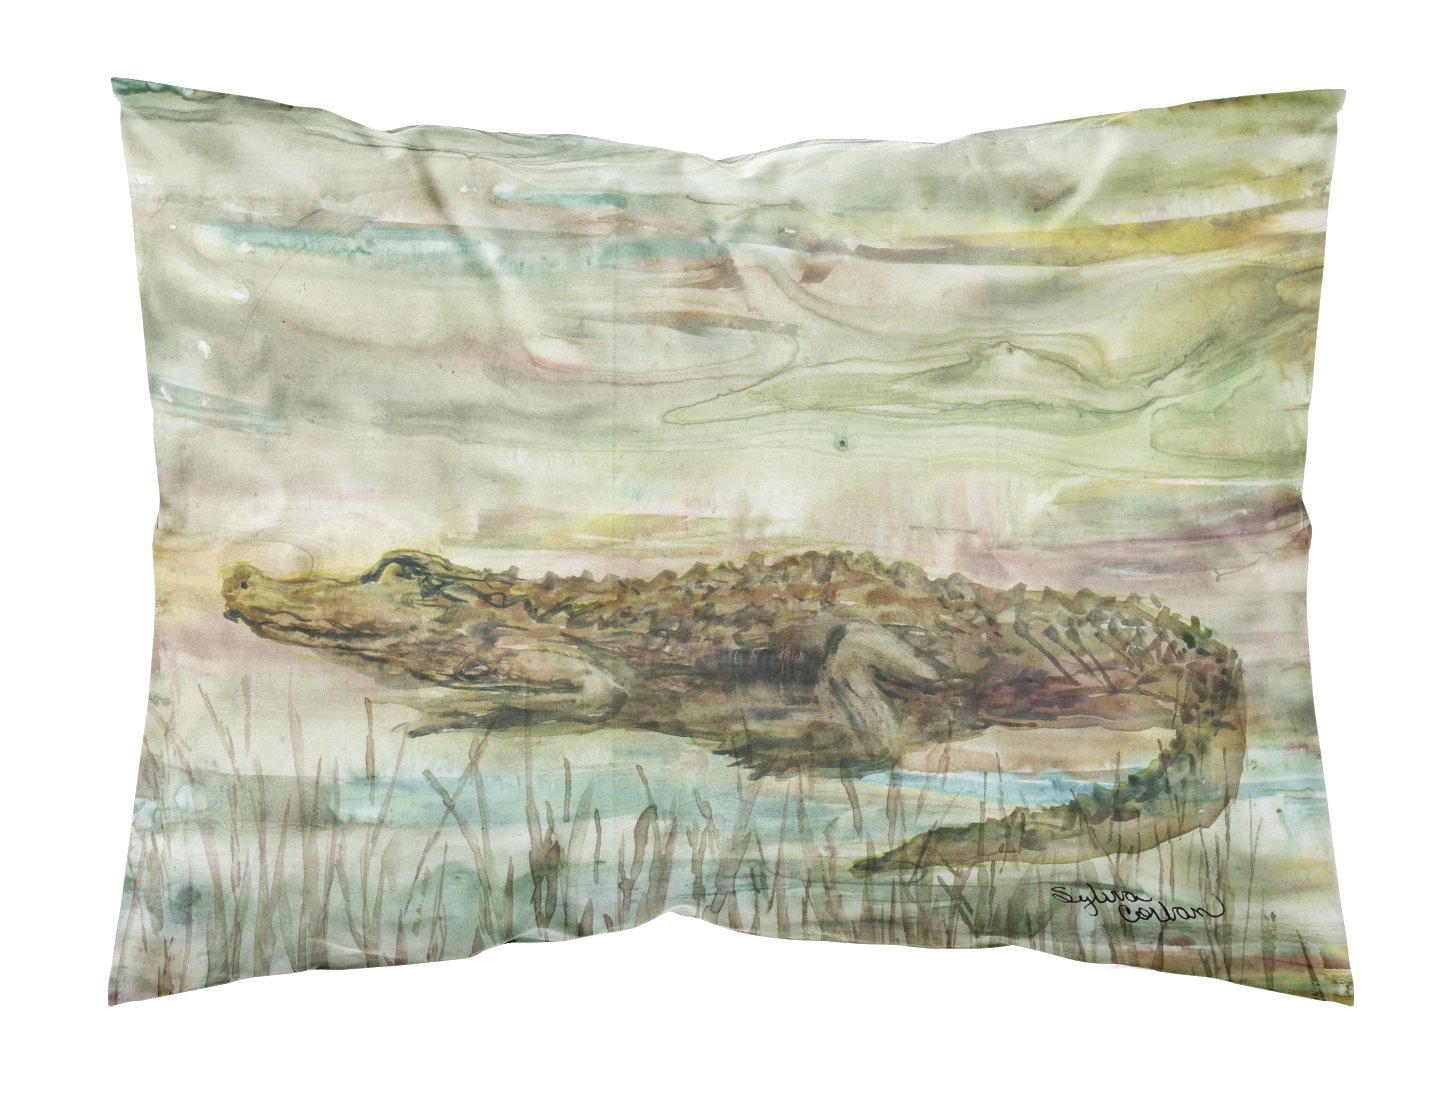 Buy this Alligator Sunset Fabric Standard Pillowcase SC2016PILLOWCASE